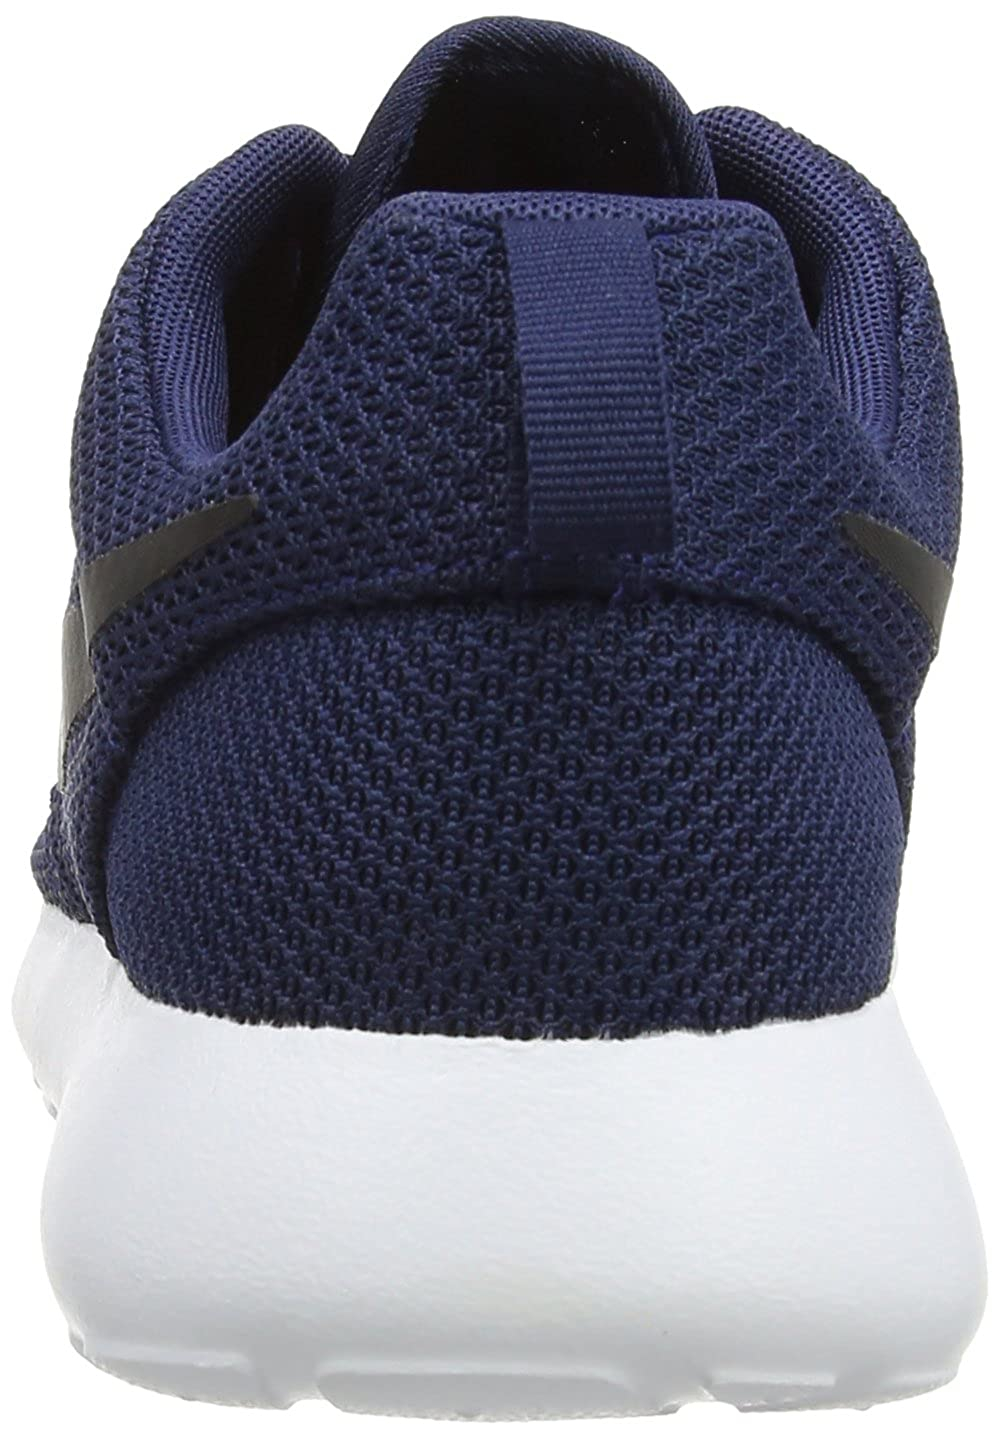 114146336957 Nike Herren Roshe One Low-Top  Amazon.de  Schuhe   Handtaschen